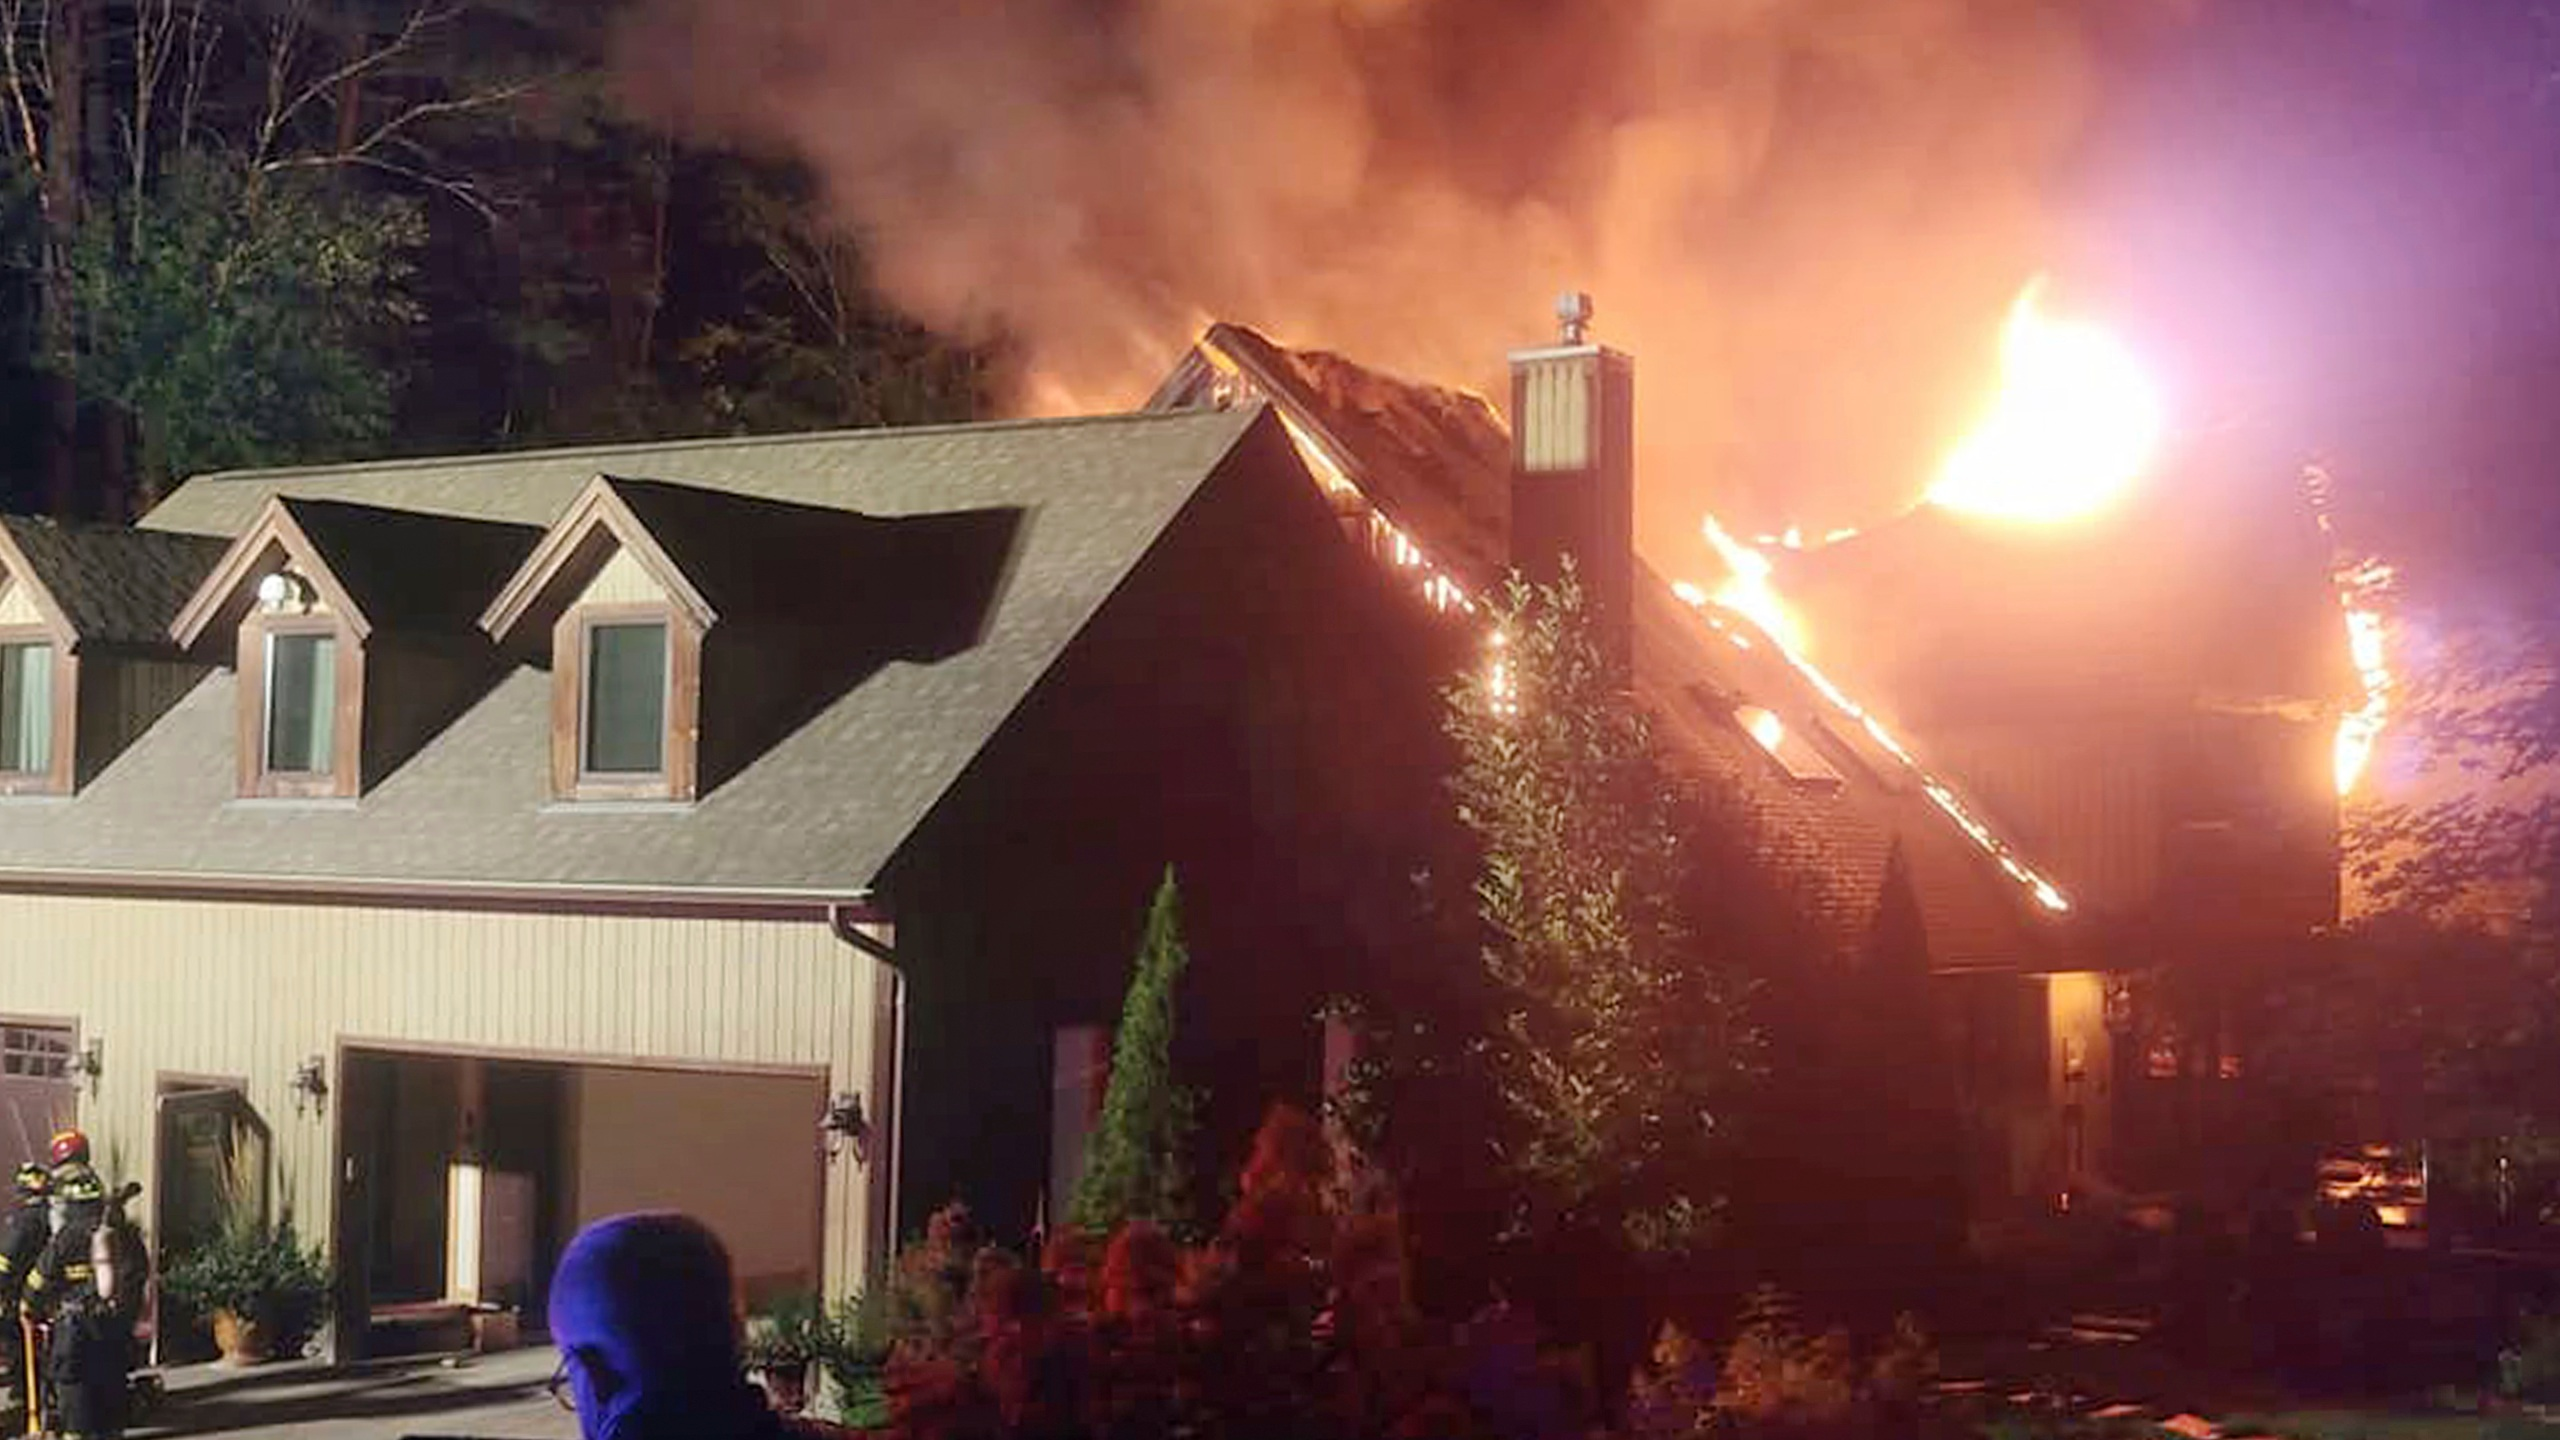 Official update on investigation into fire at Rachael Ray ...